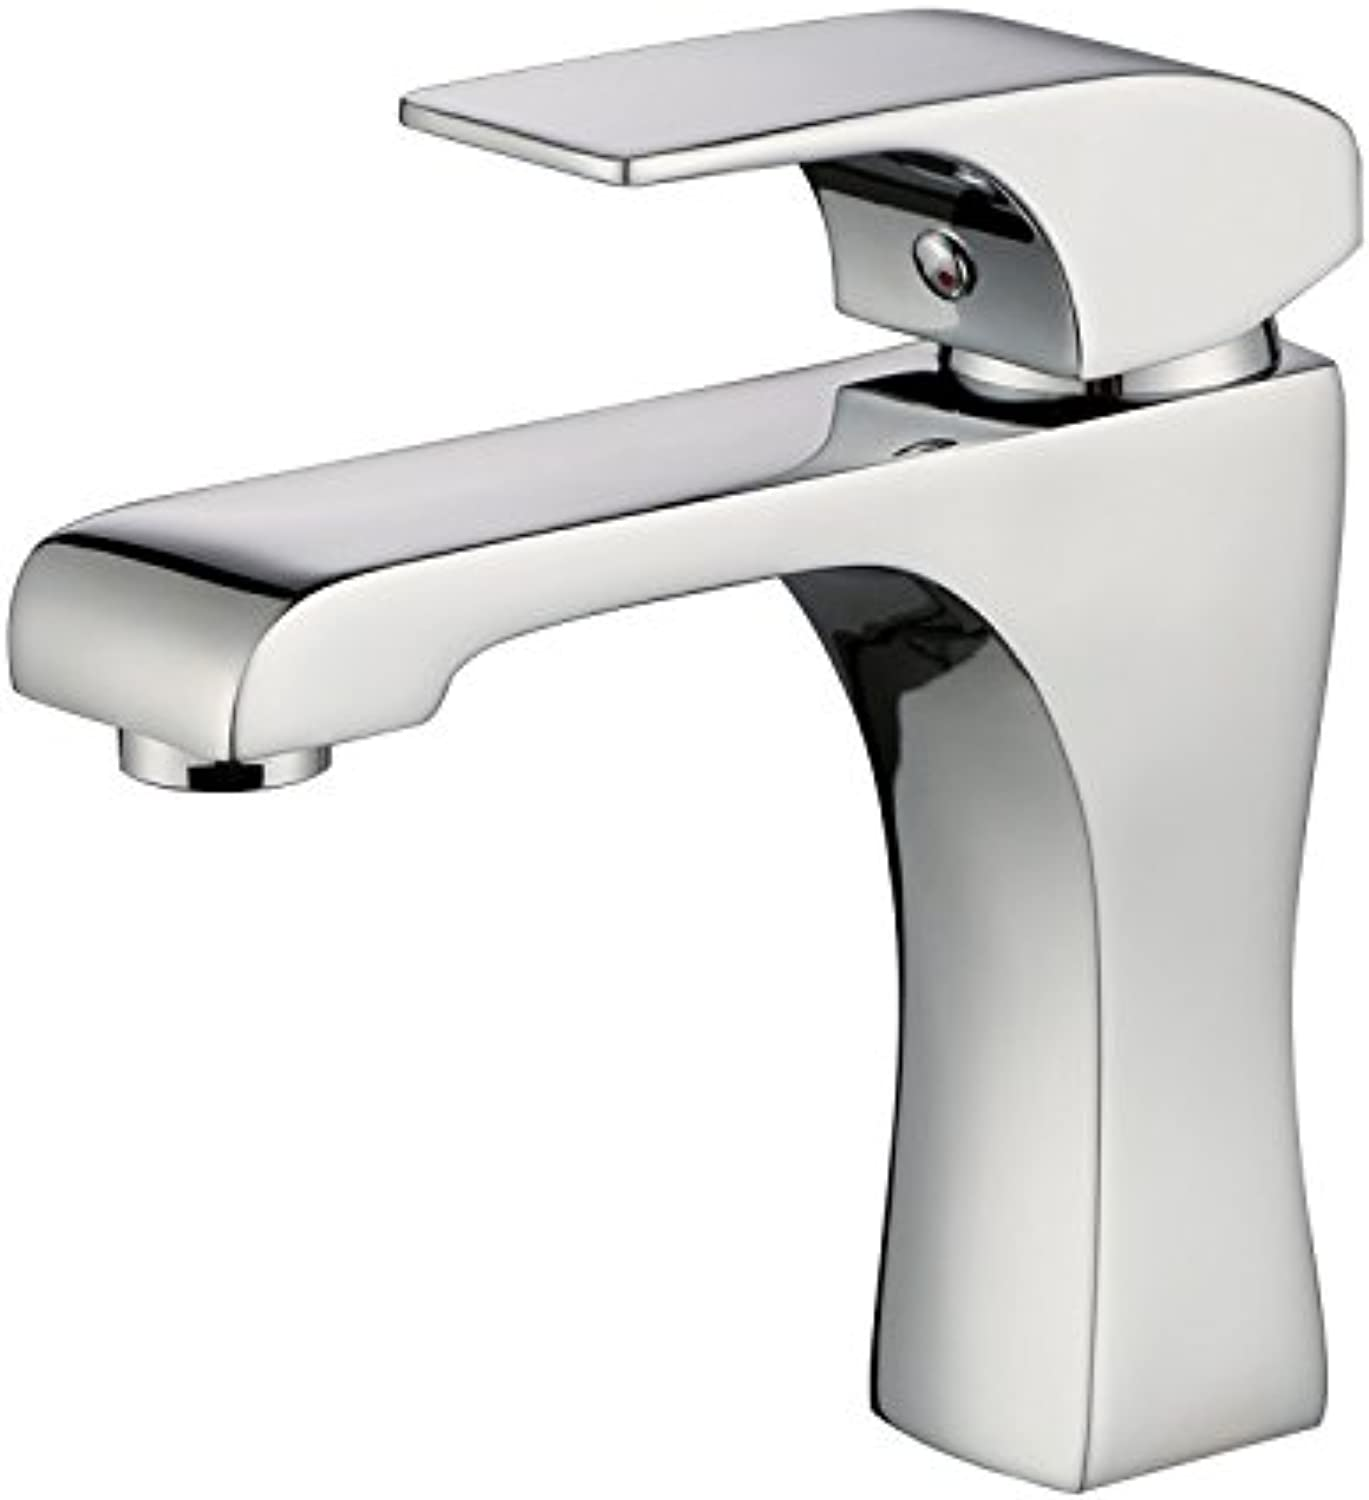 Commercial Single Lever Pull Down Kitchen Sink Faucet Brass Constructed Polished Kitchen Hot and Cold Water Faucet Factory Direct Wholesale New Wash Basin Wash Basin Hot and Cold Water Faucet 2374